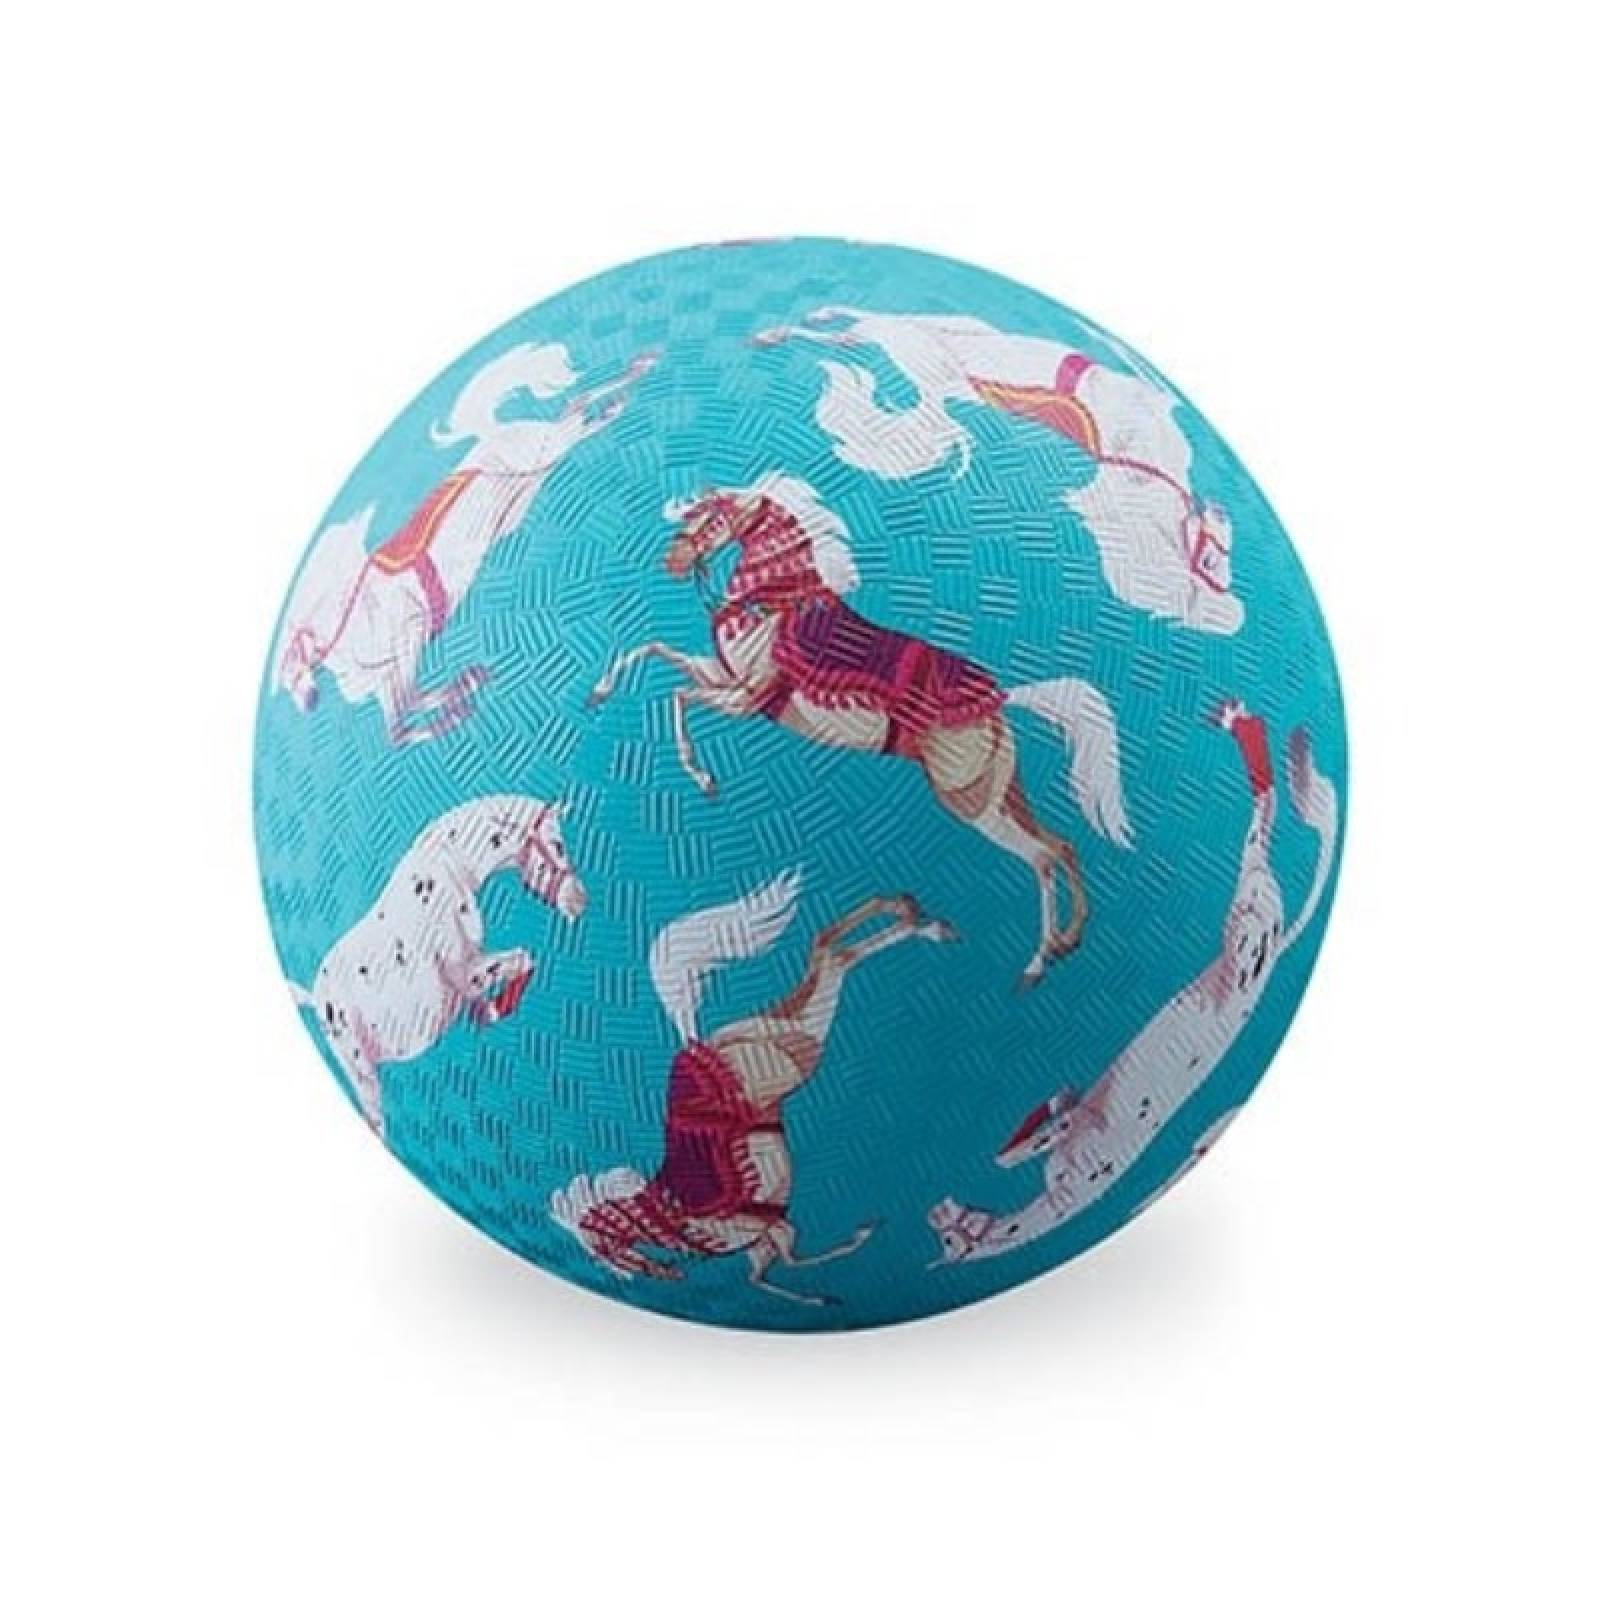 Blue Horses - Large Rubber Picture Ball 18cm